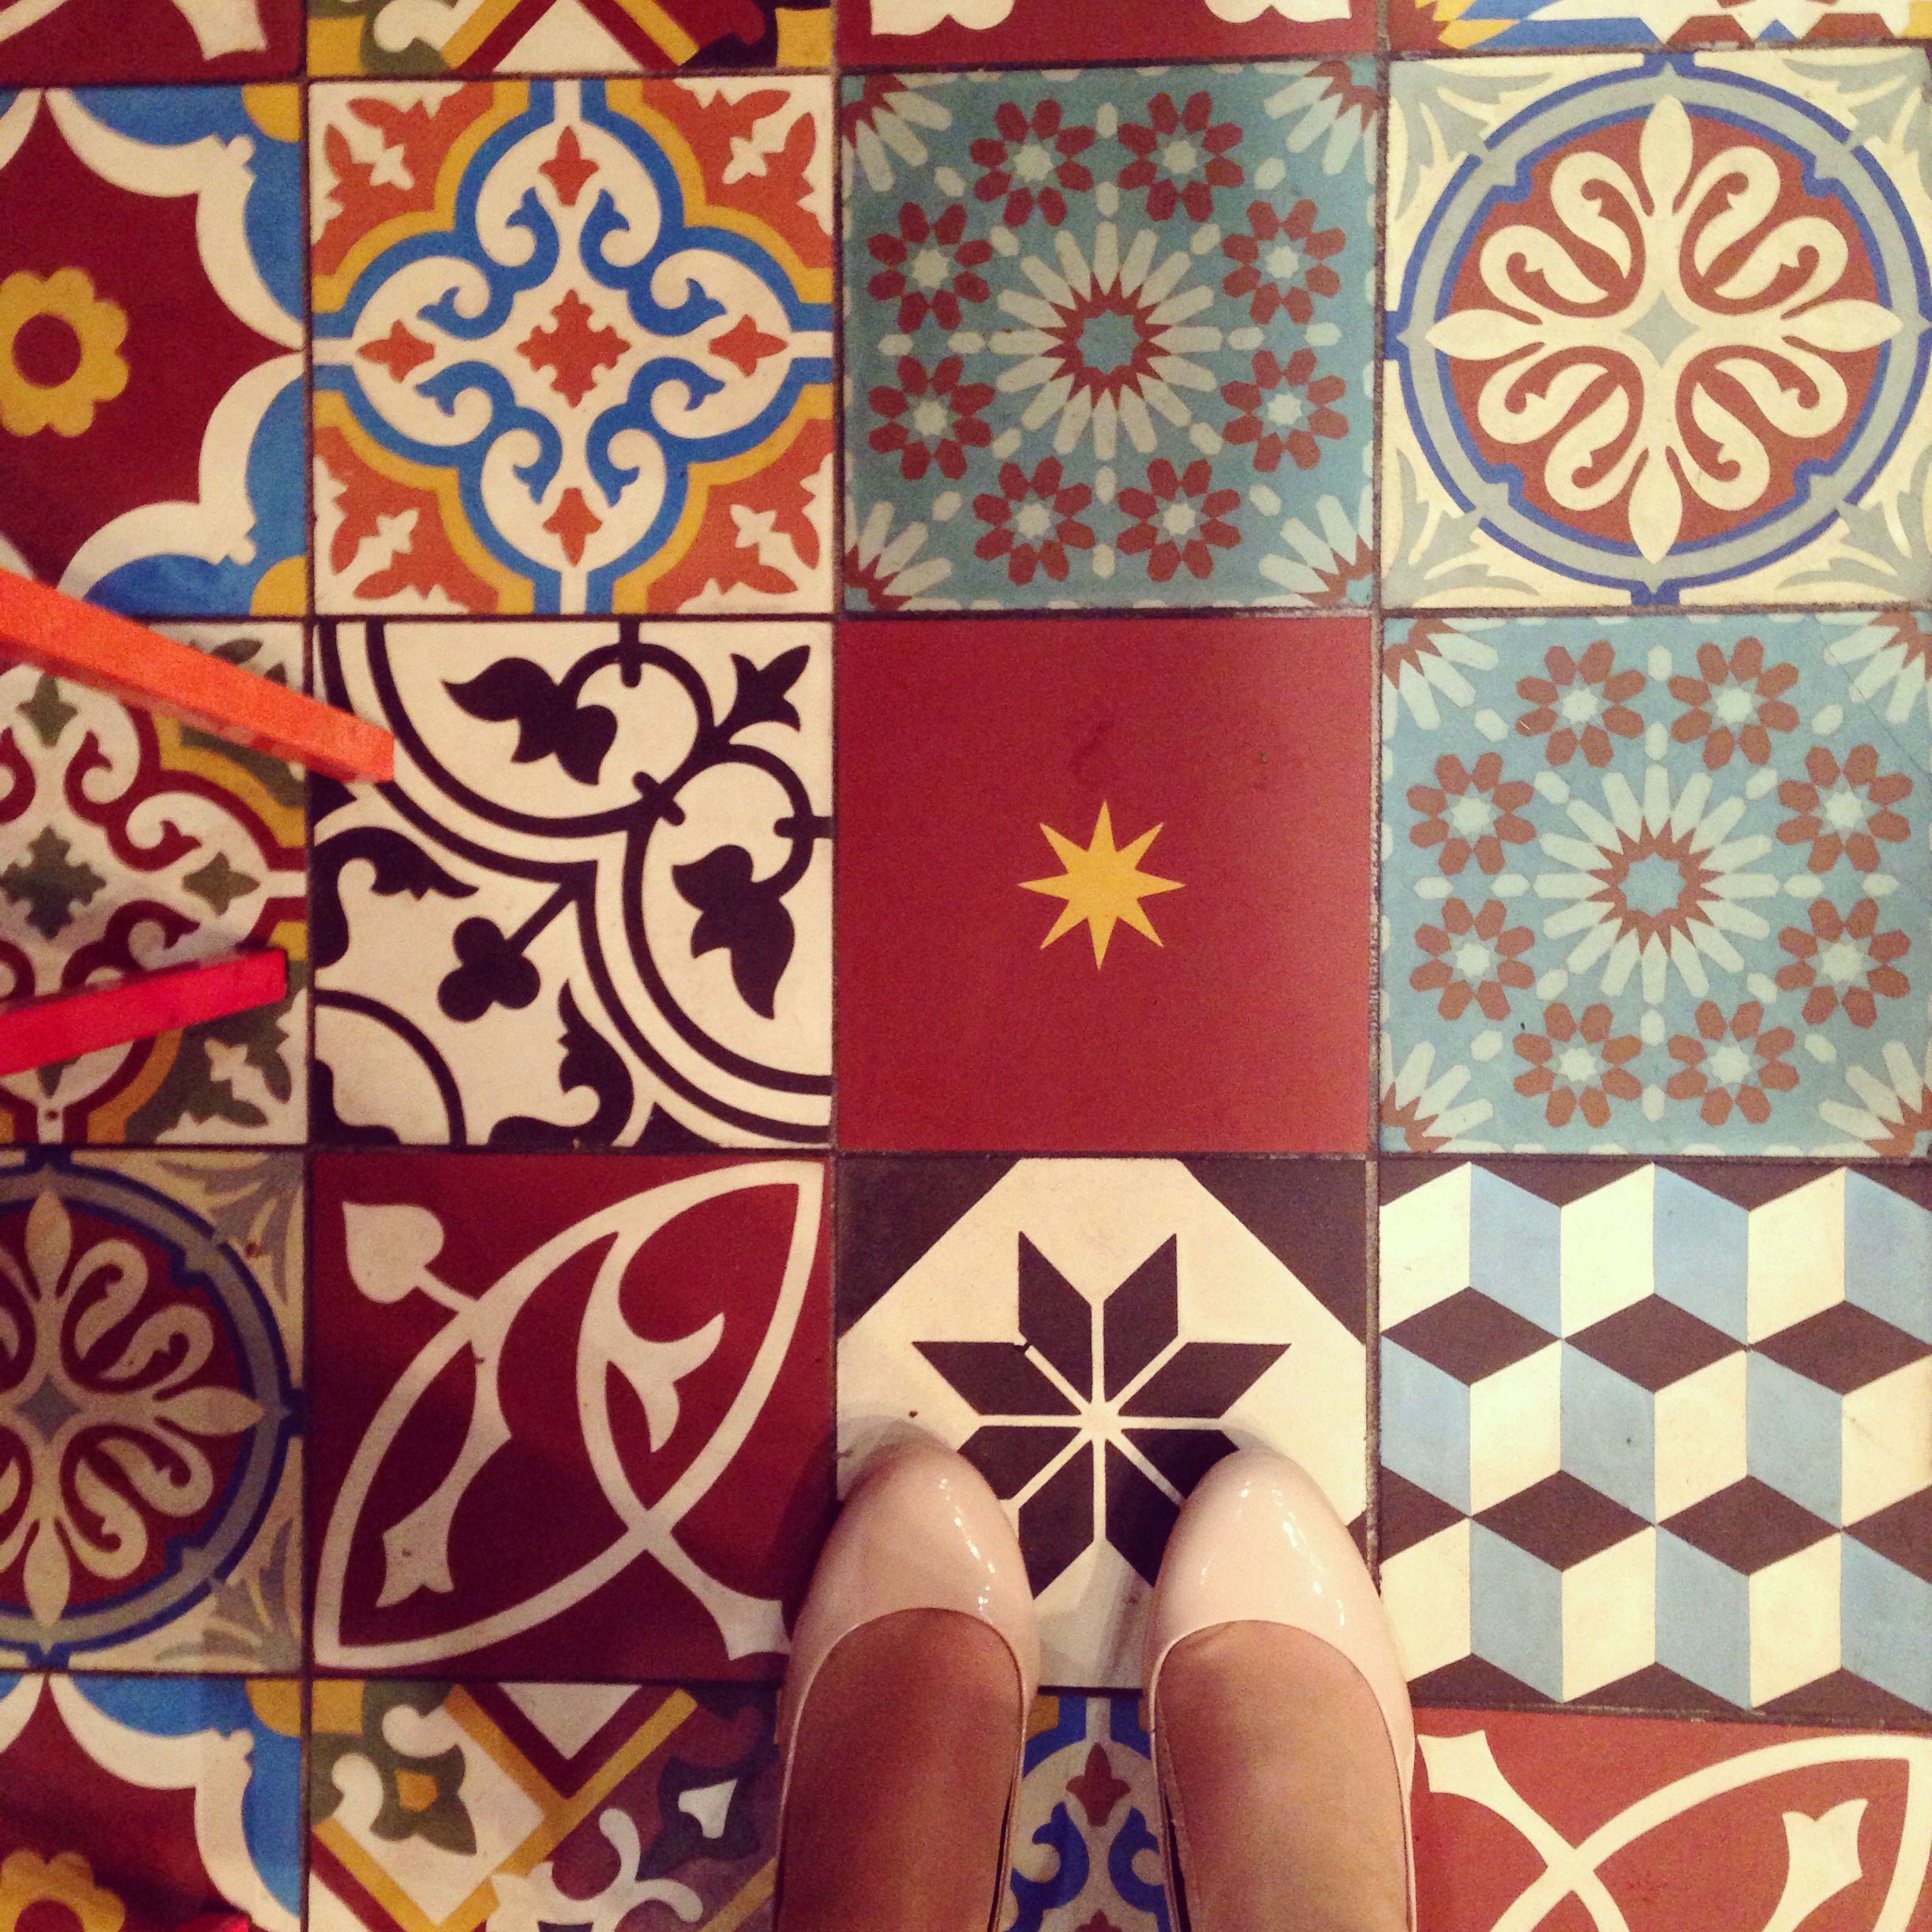 carrelage libanais - google search | beirut lovin' | pinterest